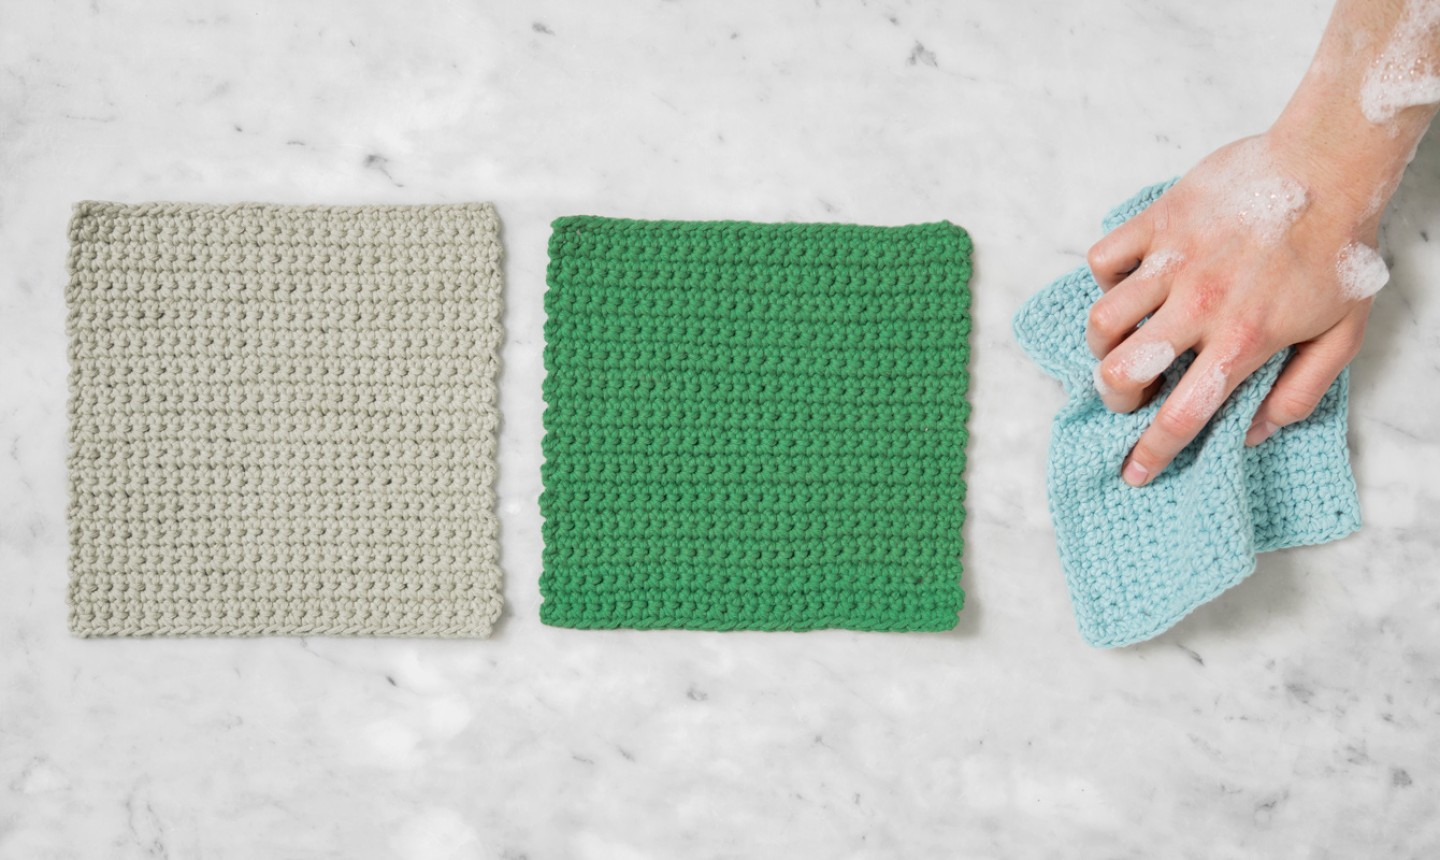 Easy Dishcloth Knit Pattern Easiest Crochet Project Ever Stitch A Dishcloth